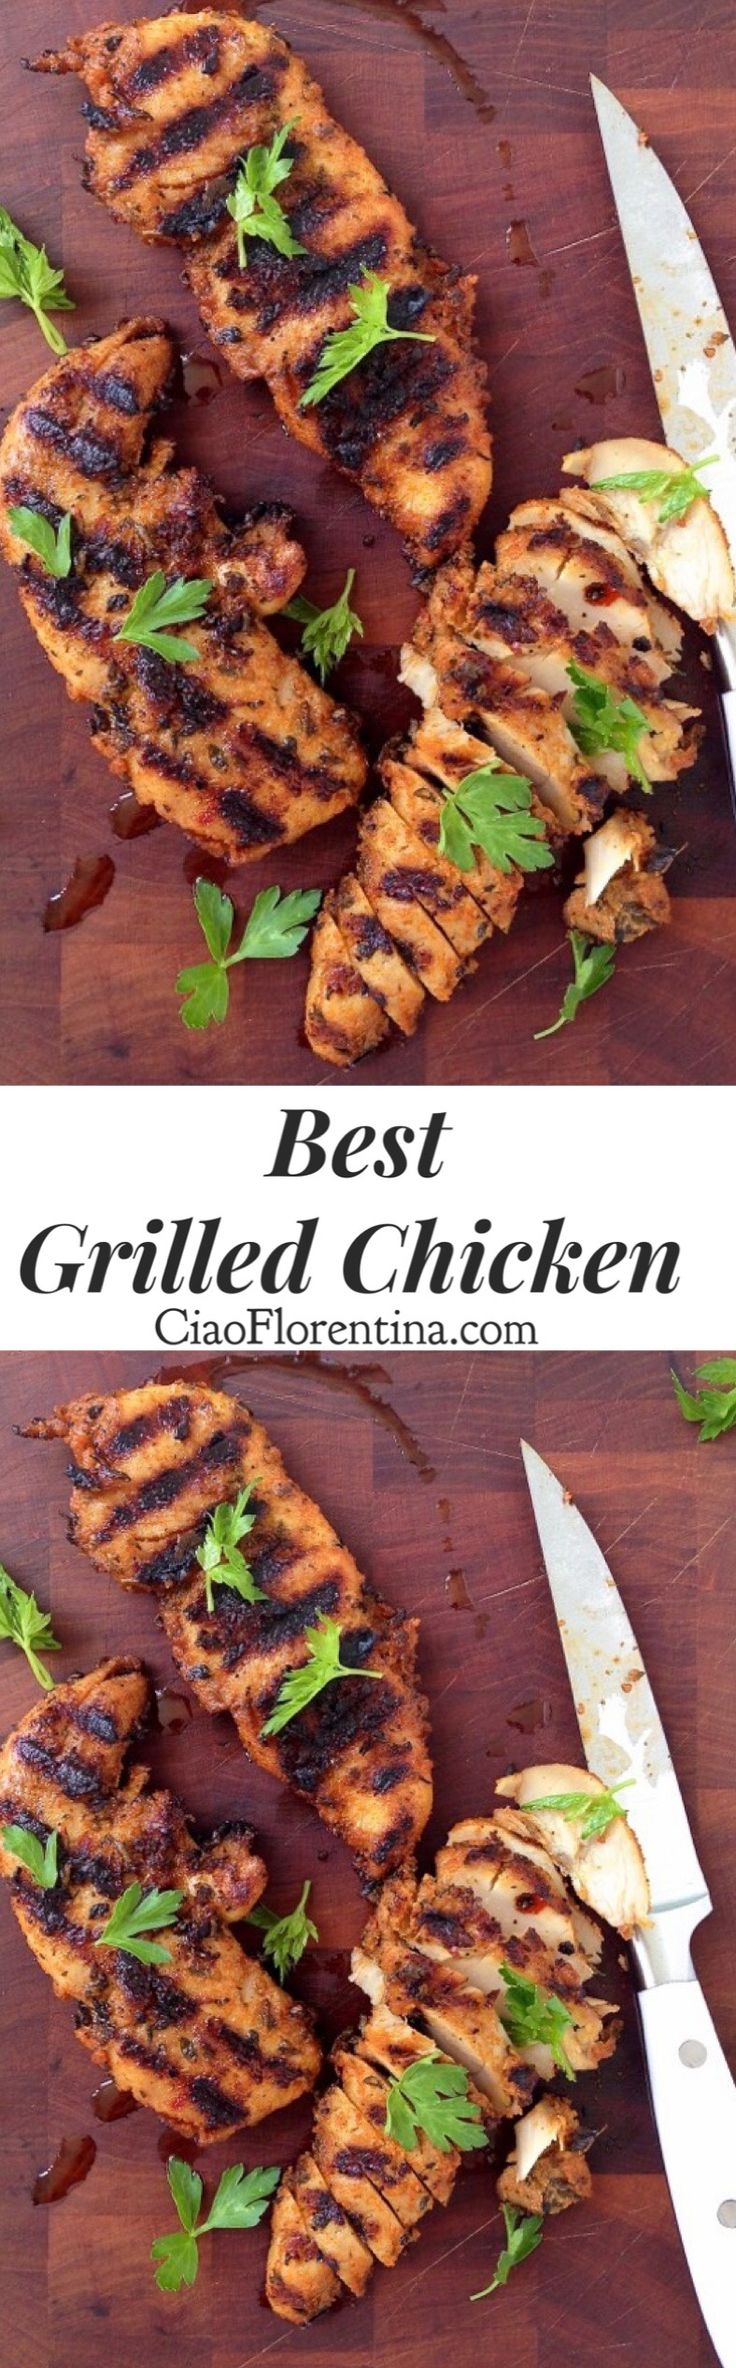 Best Grilled Chicken Recipe, quick and easy made with tenderloin and a magical smoky homemade spice mix | CiaoFlorentina.com @CiaoFlorentina